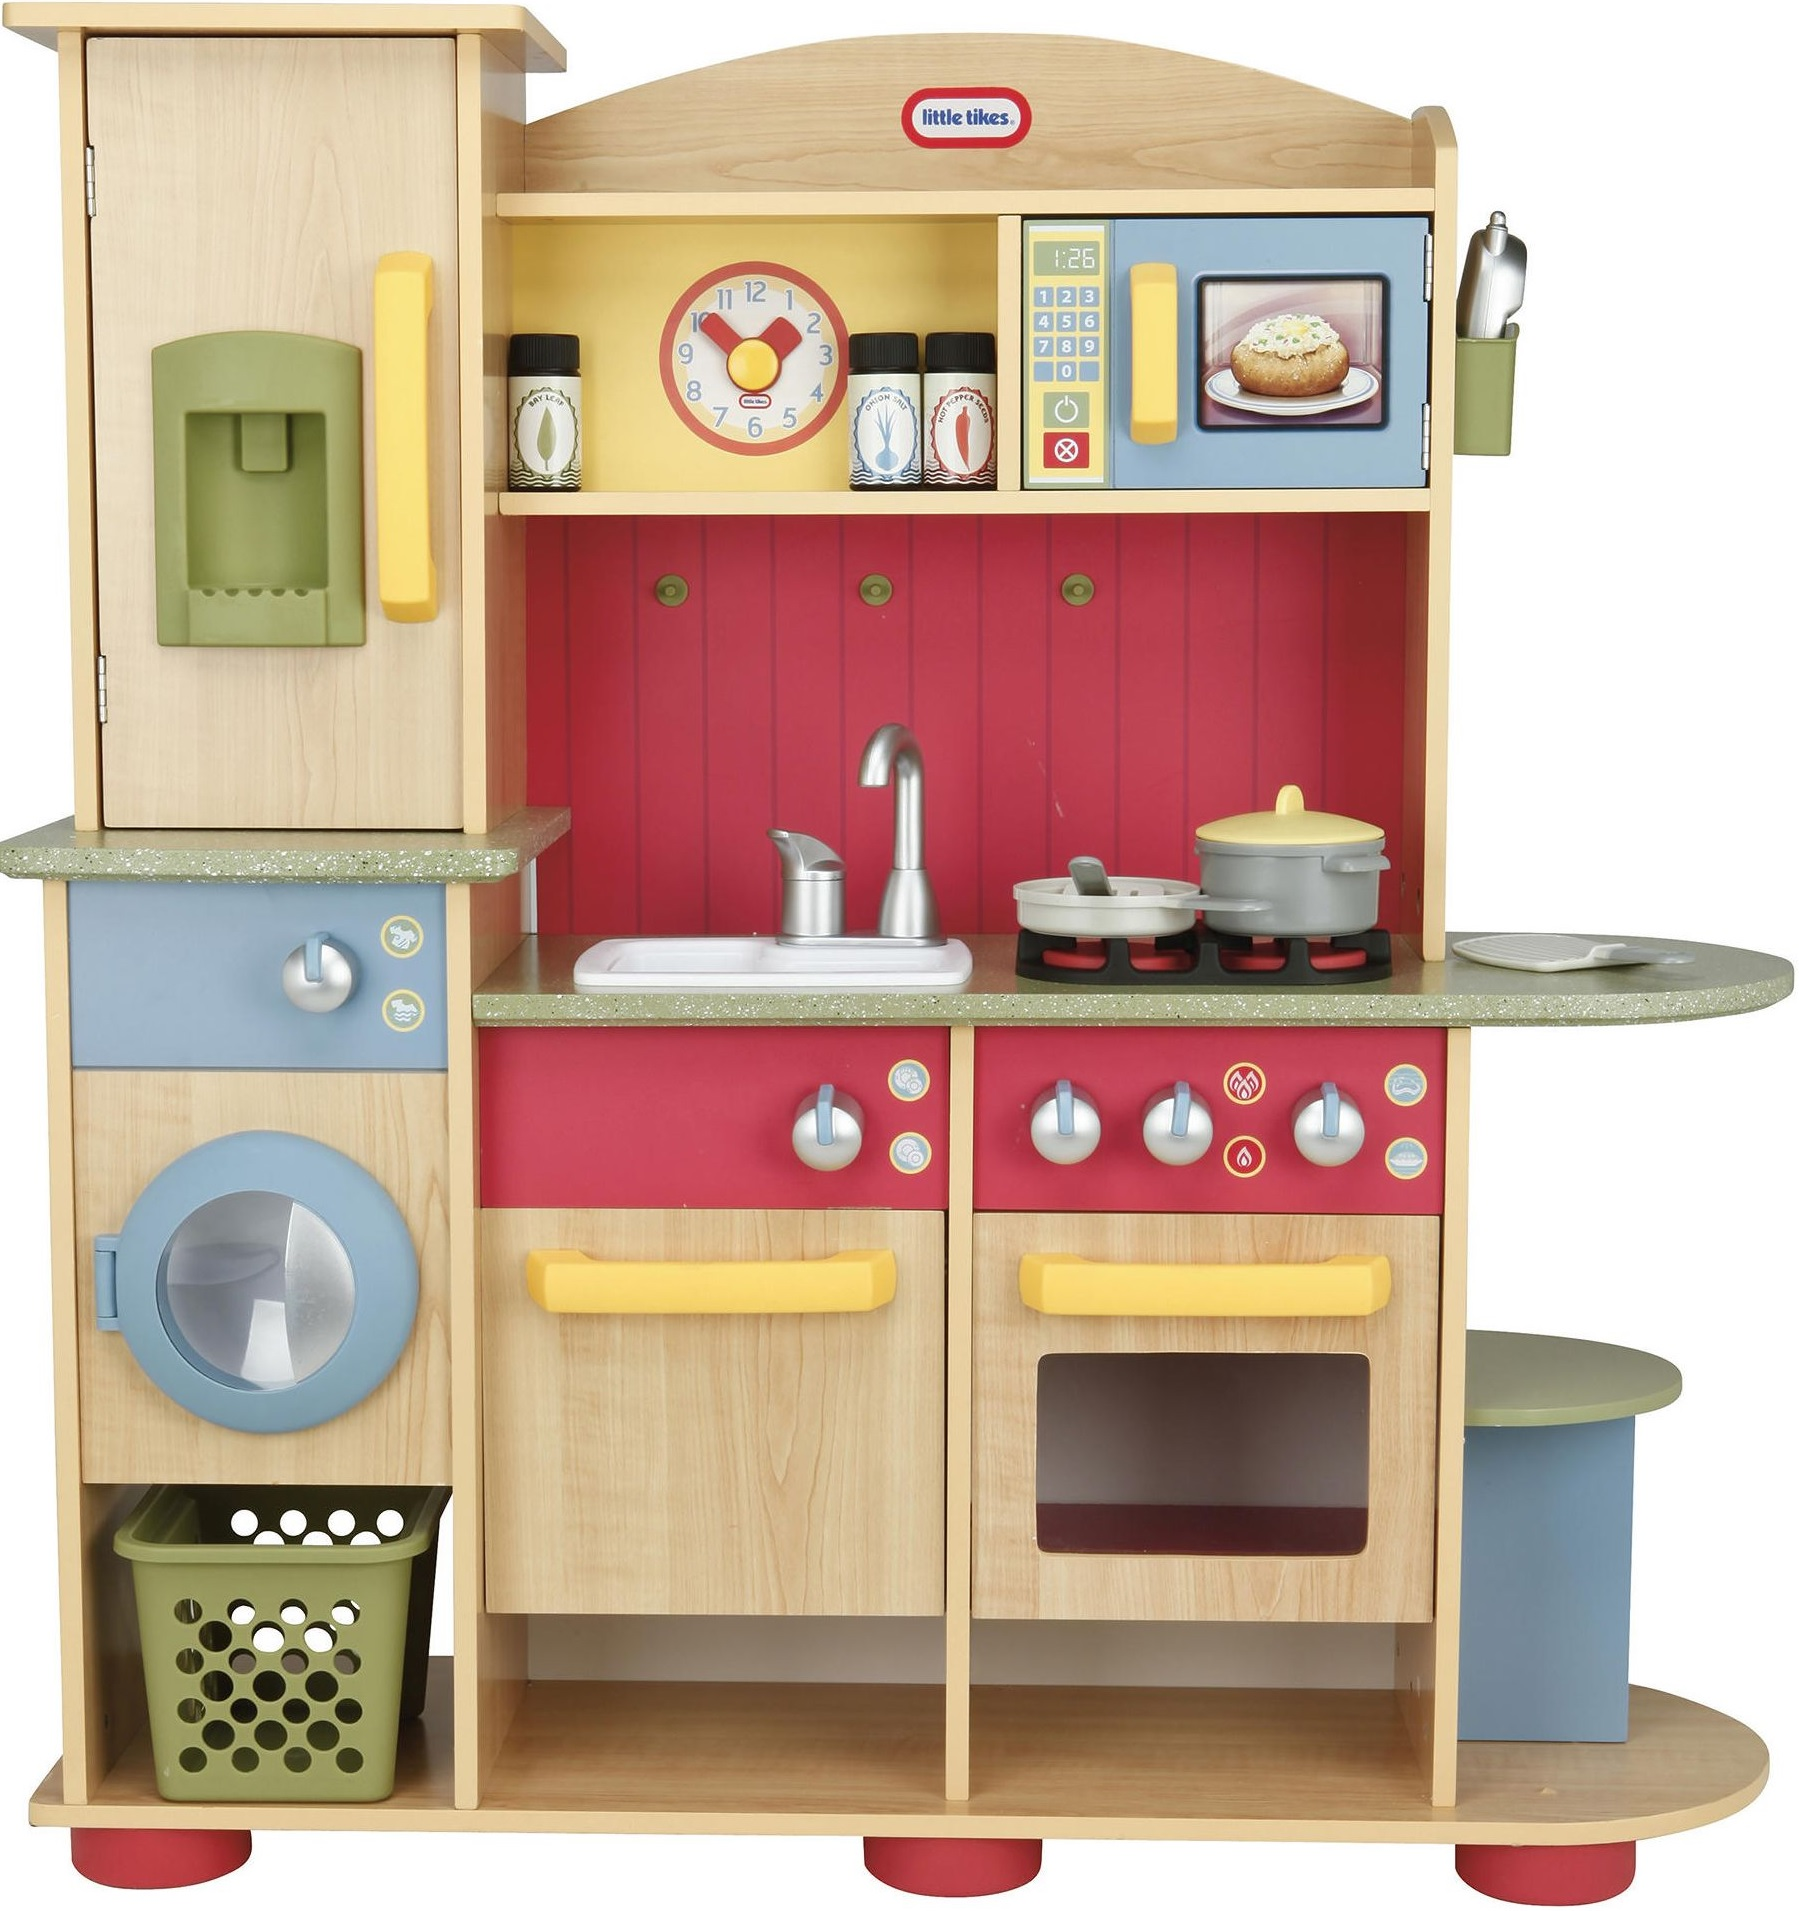 NEW Little Tikes Cooking Creations Premium Wooden Kitchen